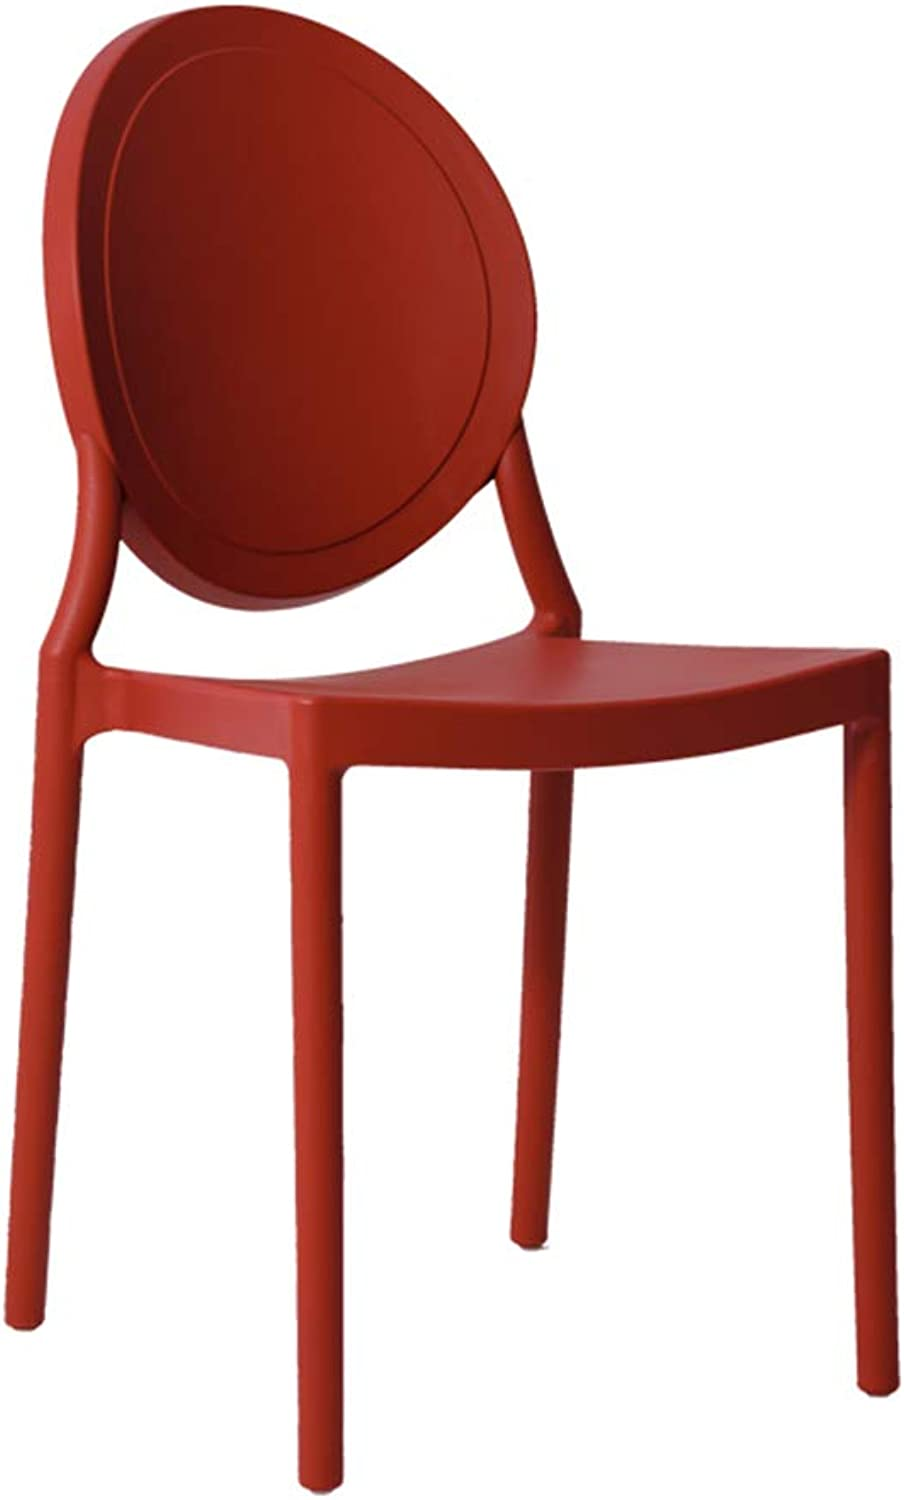 LYXPUZI Dressing Stool Plastic Chair Modern Minimalist Nordic Chair Makeup Chair Makeup Chair (color   RED)